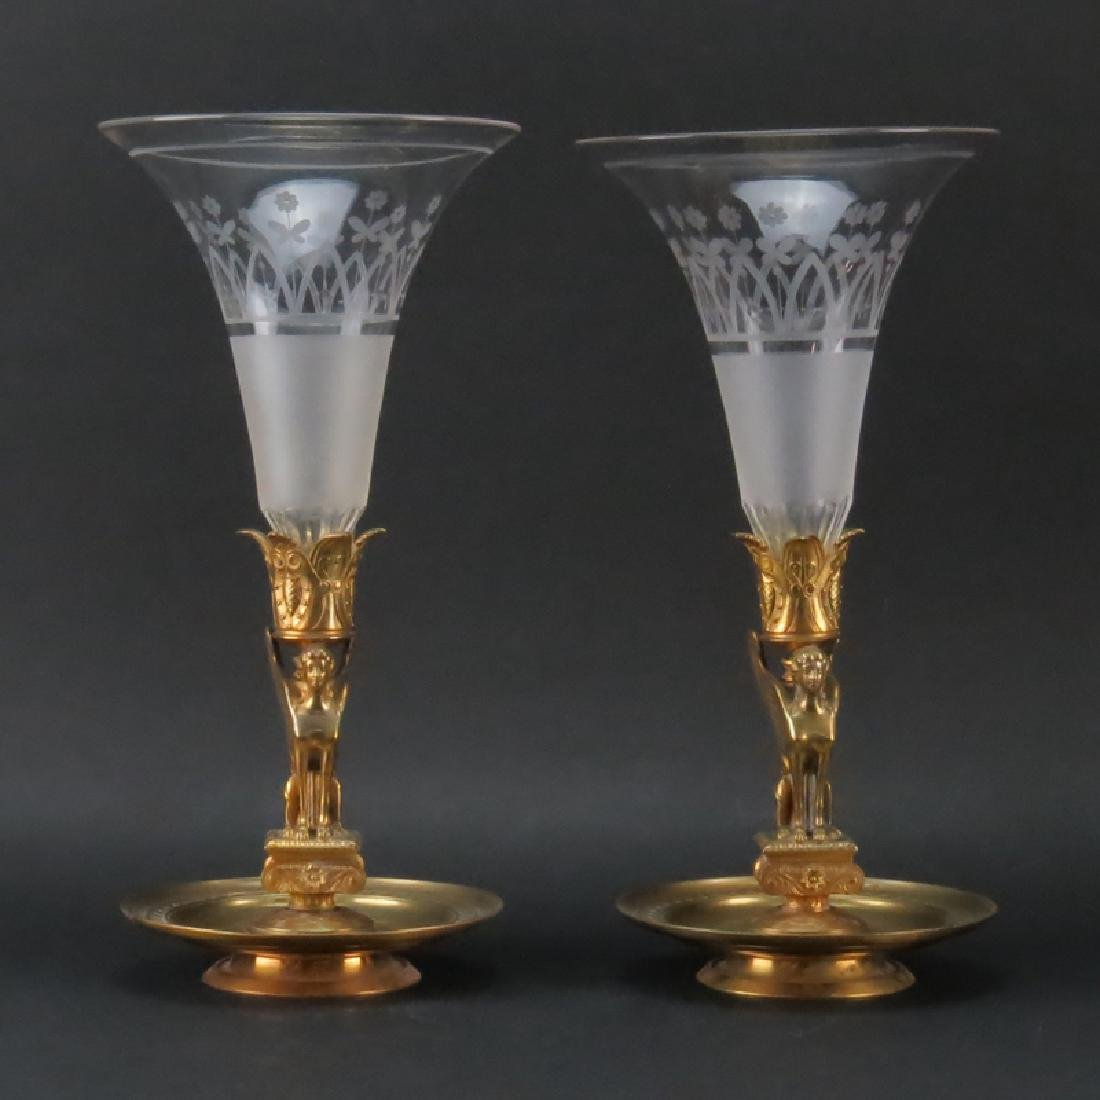 Pair Antique French Empire Ormolu and Etched Crystal